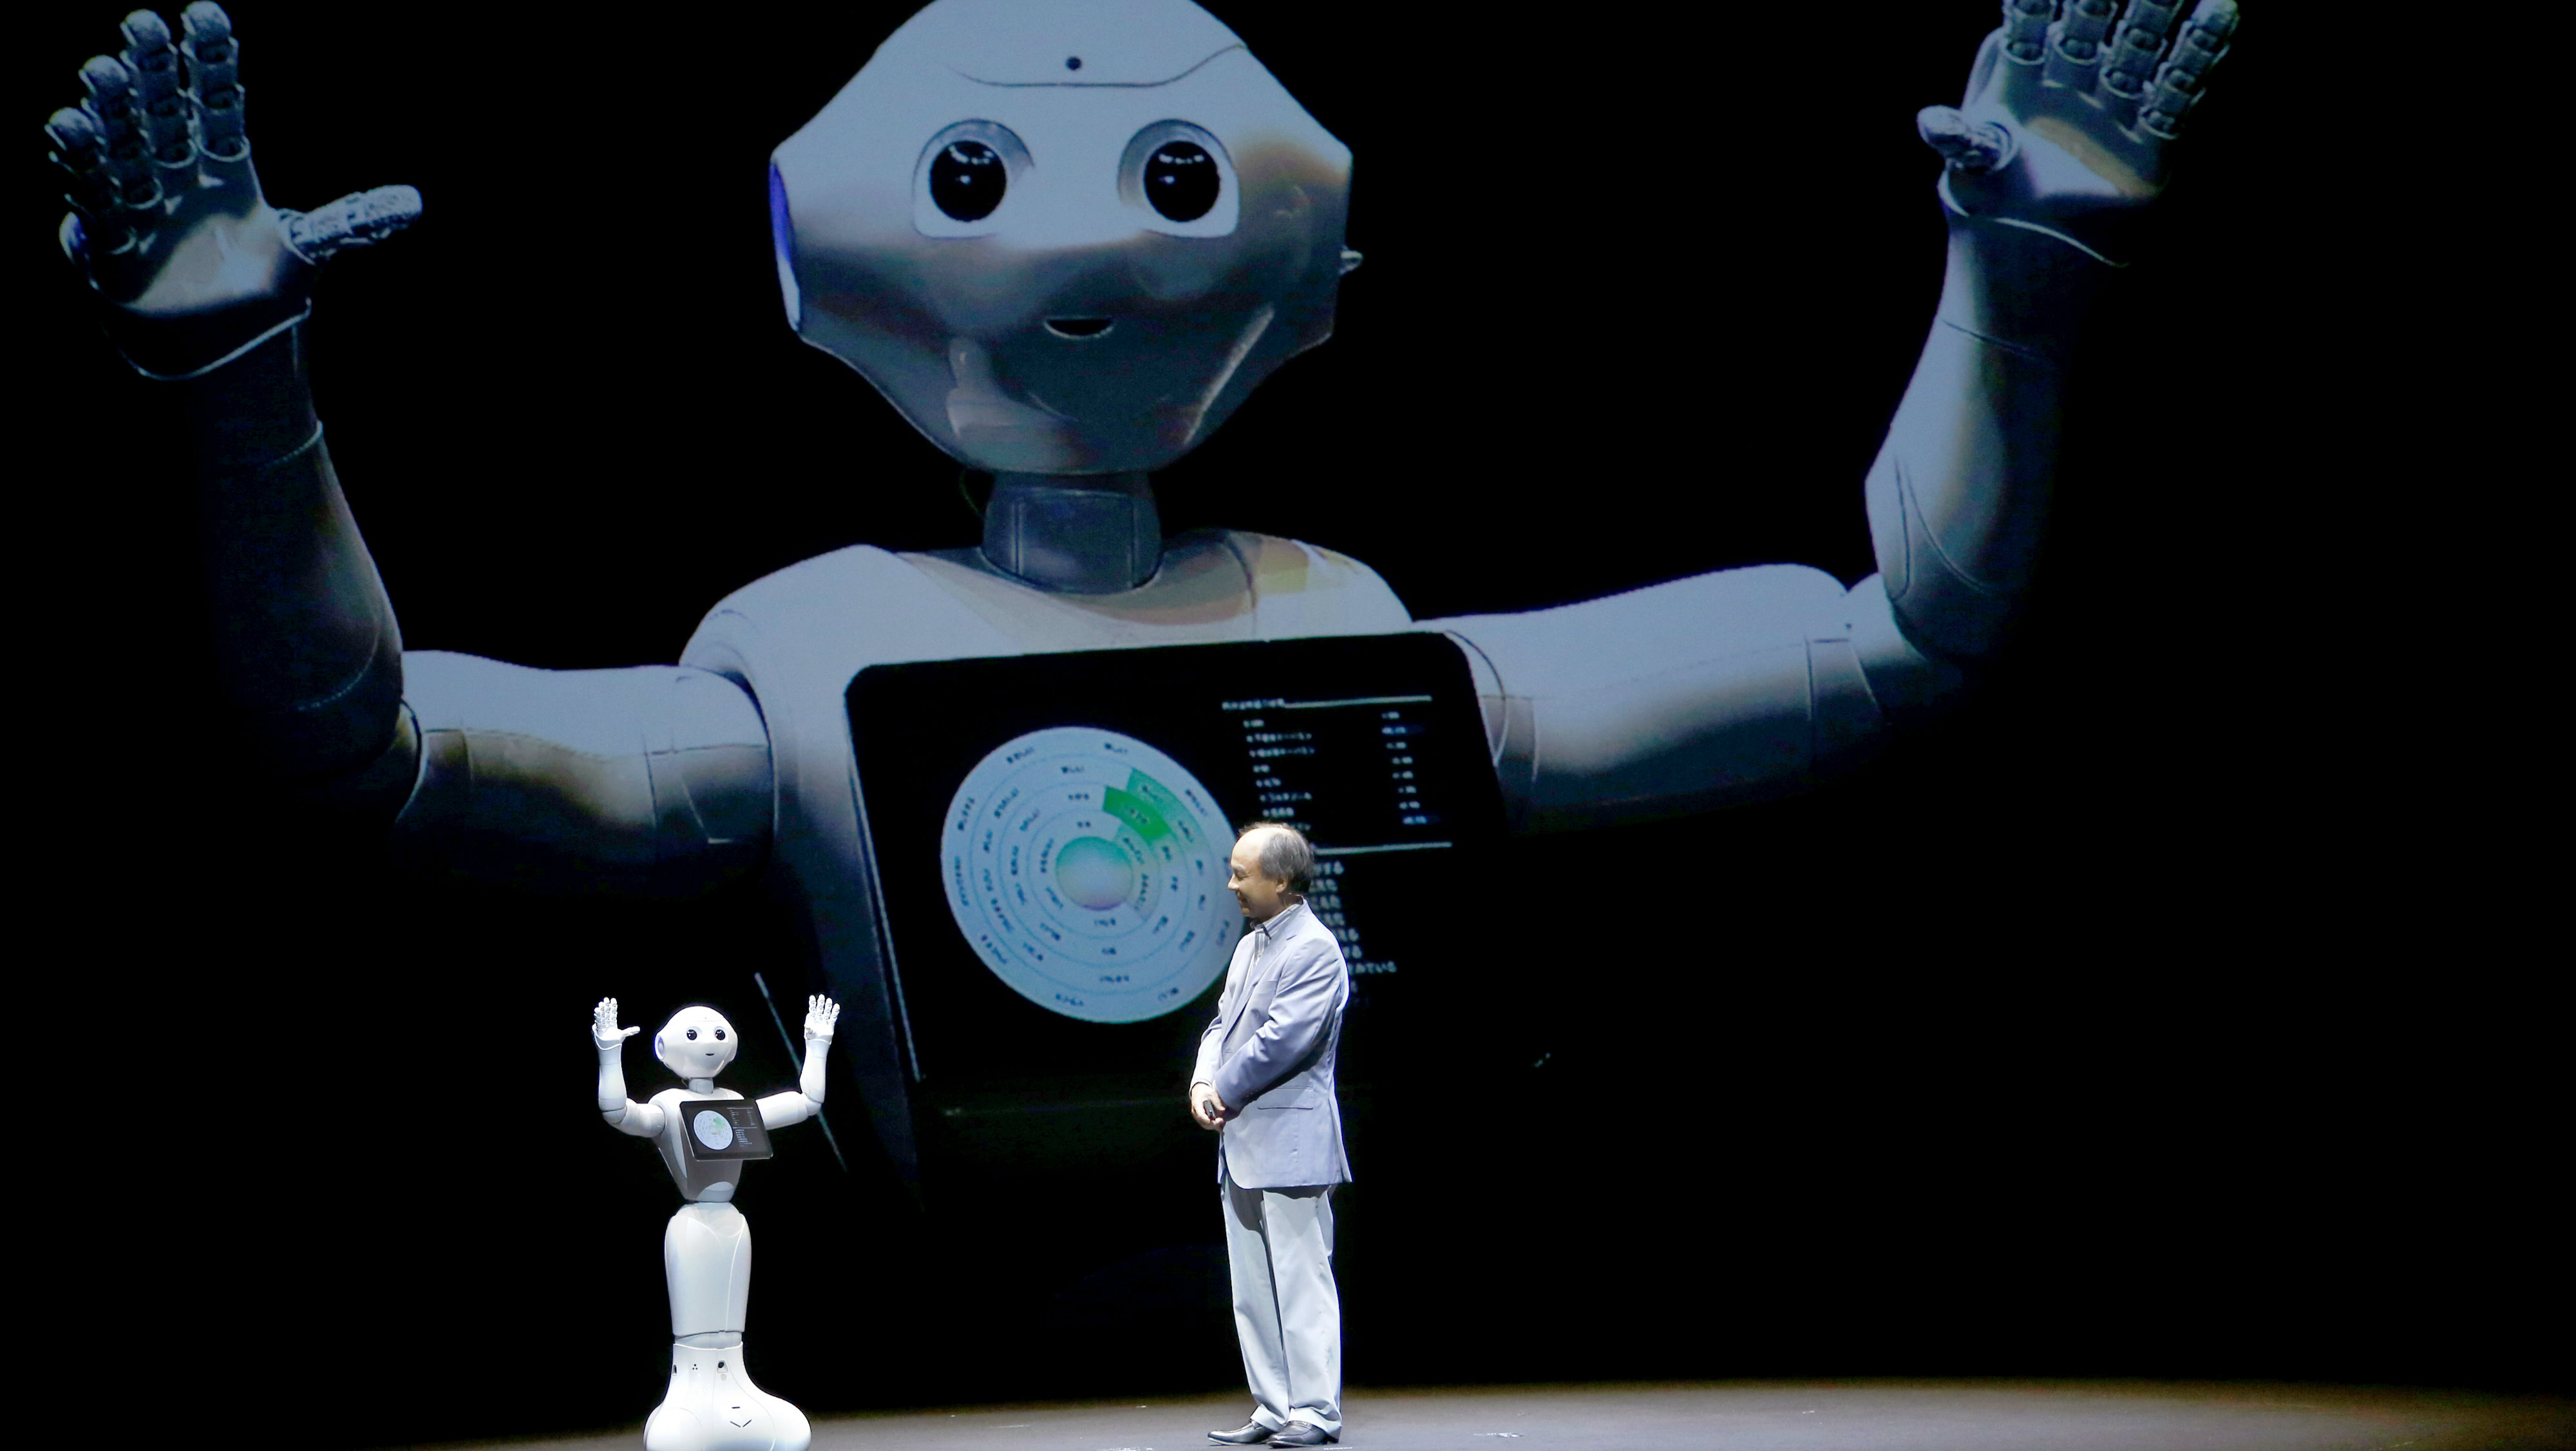 SoftBank Corp CEO Masayoshi Son speaks with the company's robot Pepper